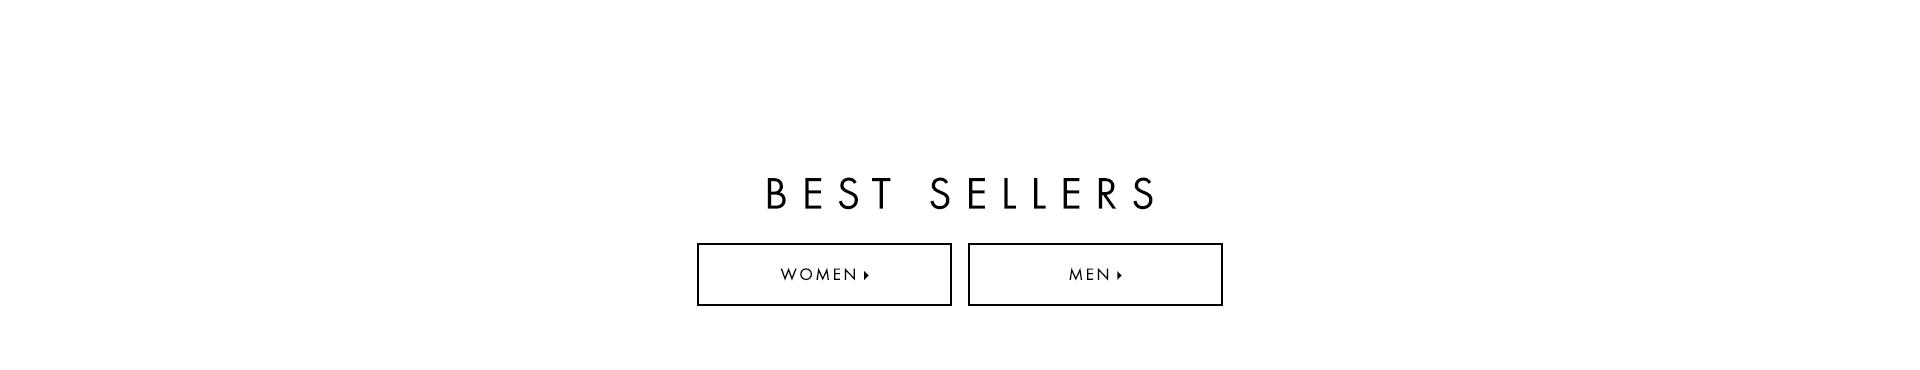 Womens and Mens Best Sellers